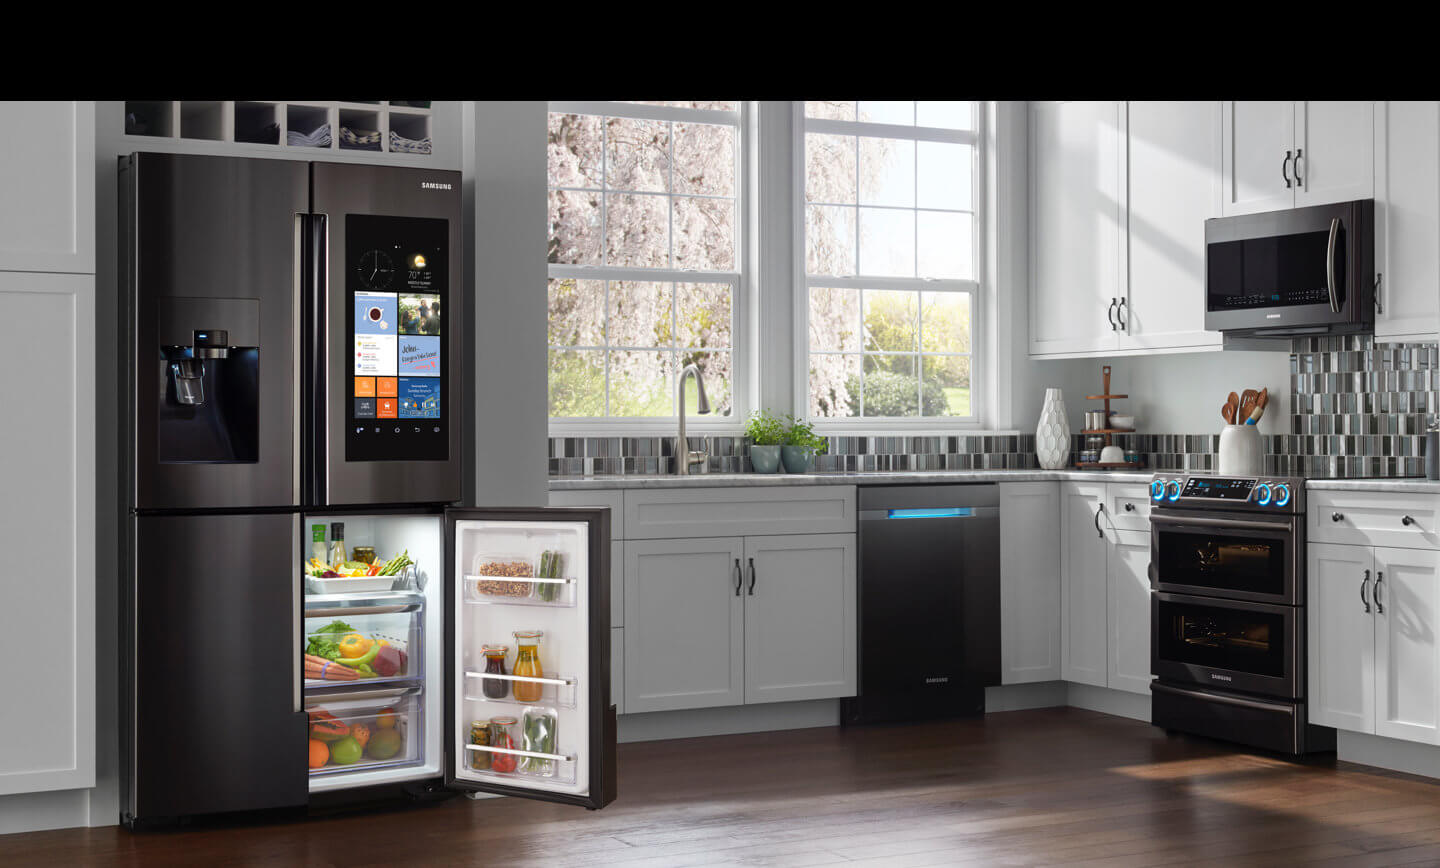 How to Buy the Best Refrigerator for Your Needs